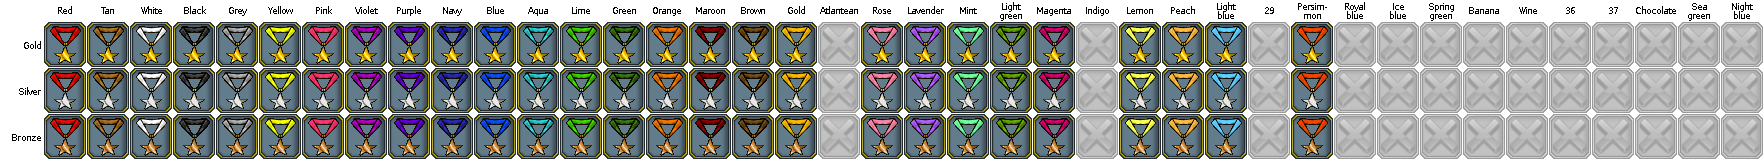 Colors-trinket-Star medal.png